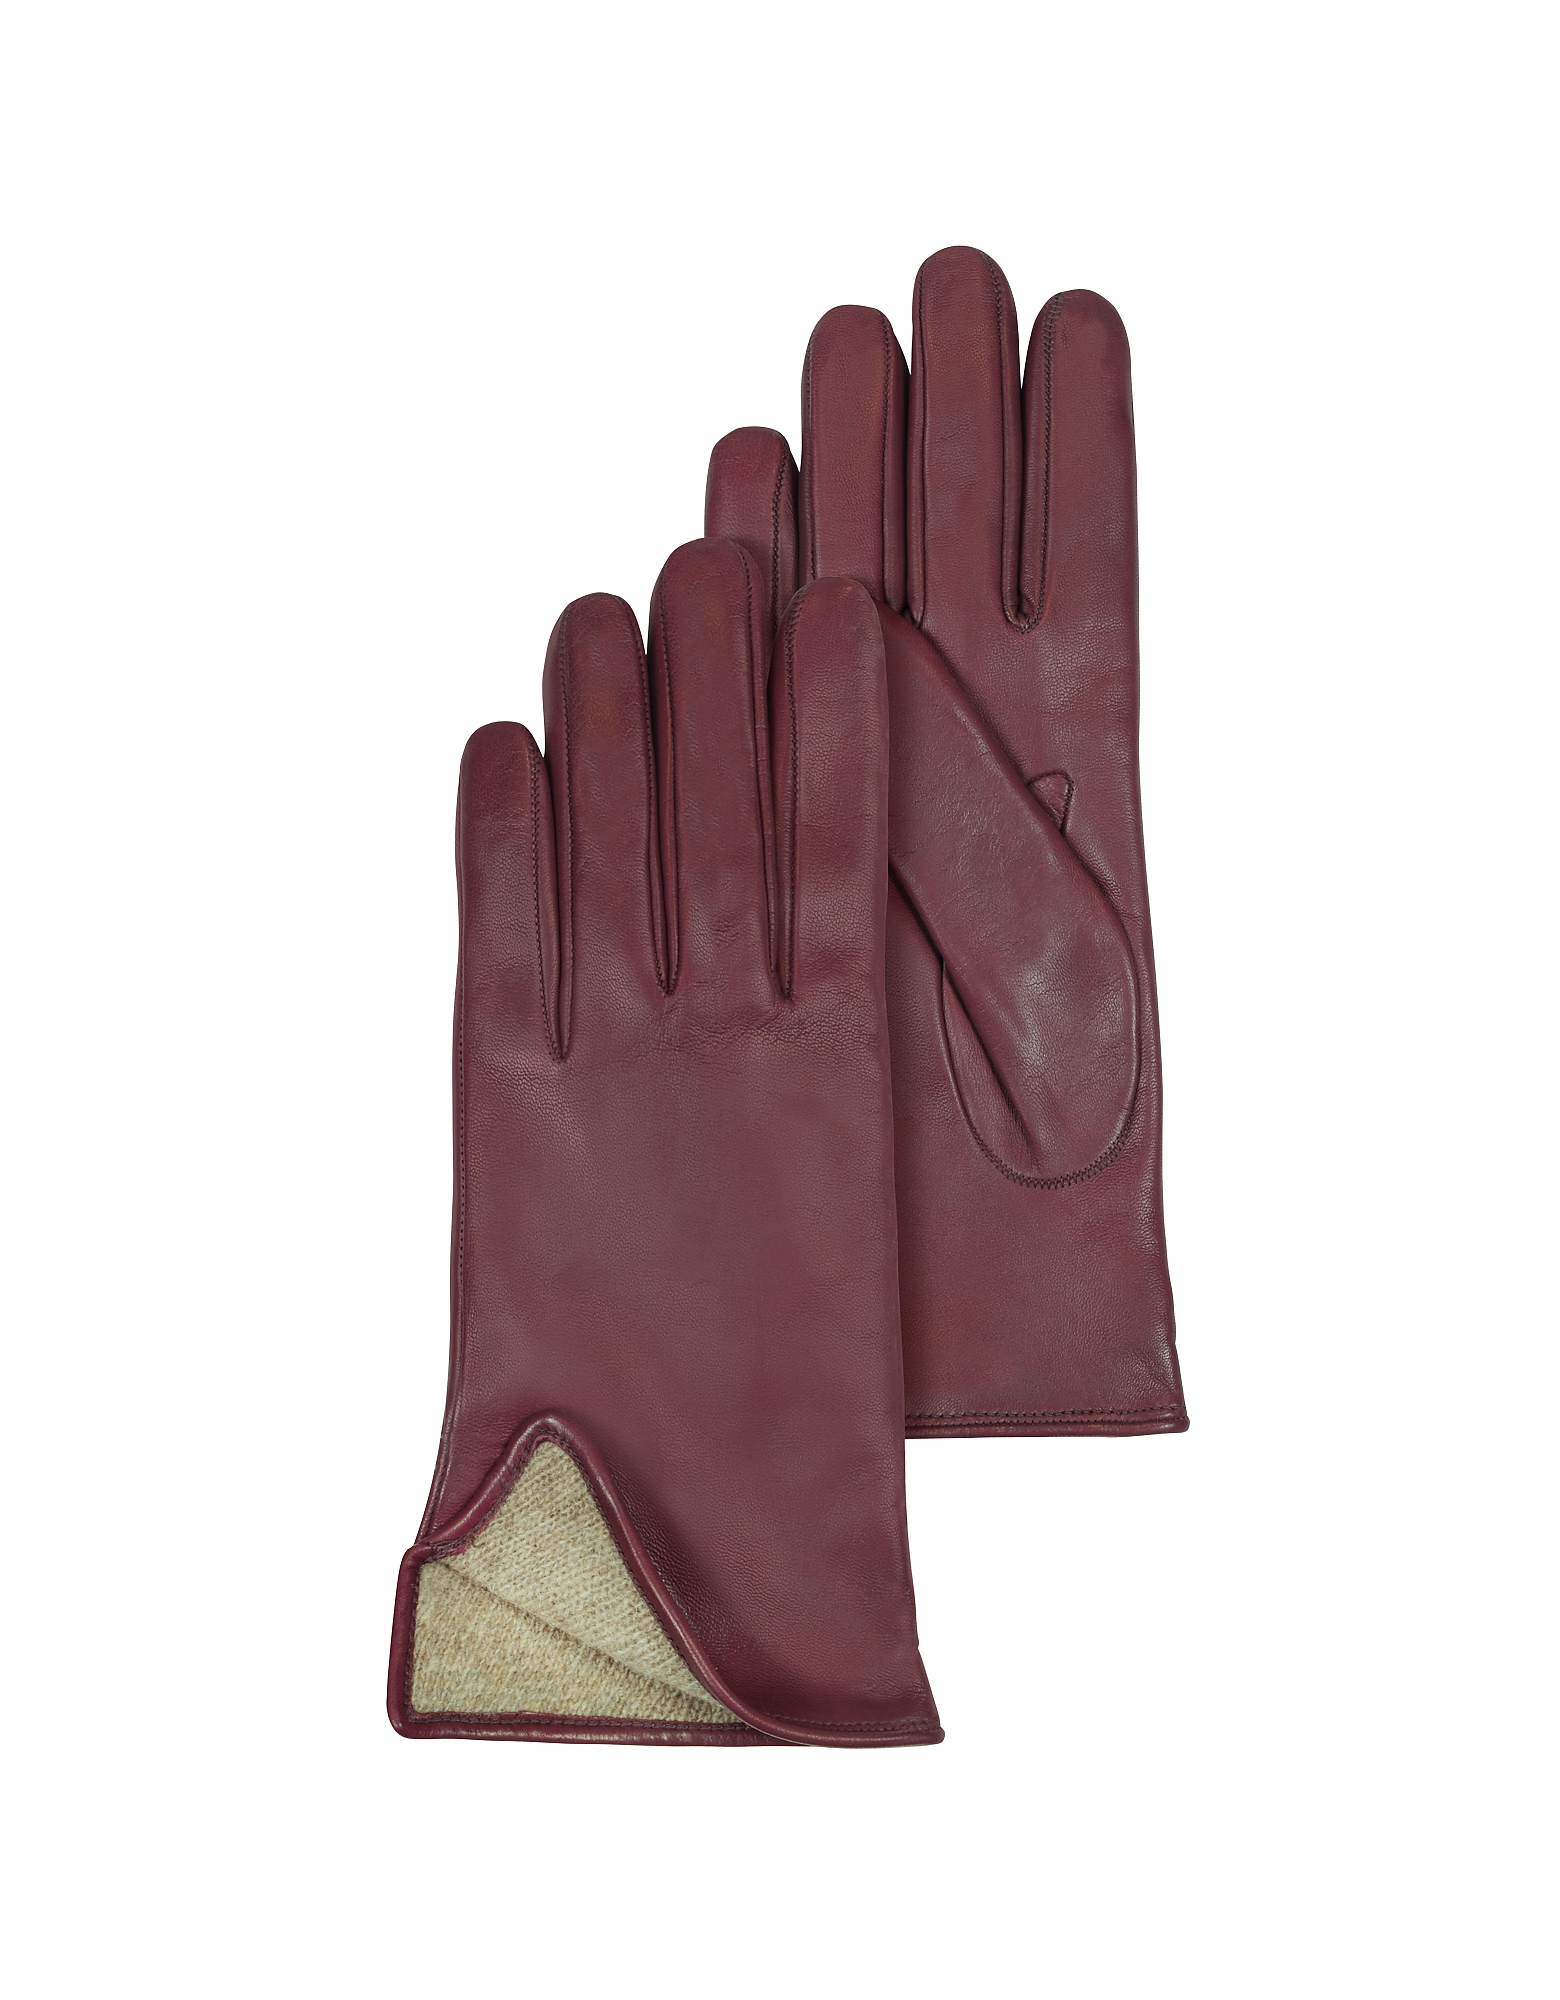 Women's Burgundy Cashmere Lined Italian Leather Gloves от Forzieri.com INT